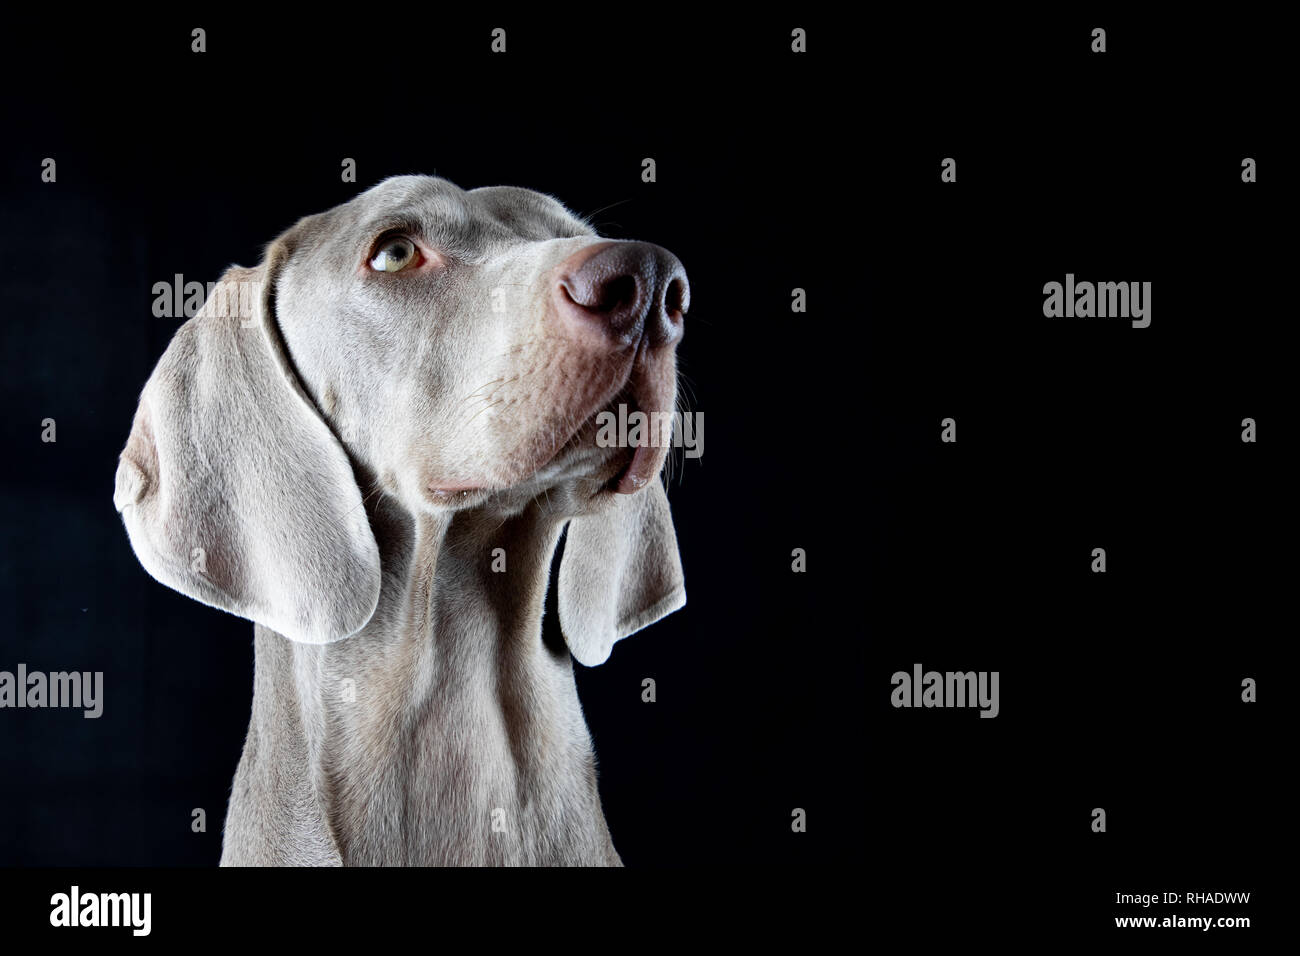 Silver Haired Dog Portrait - Looking Right and Up - Stock Image